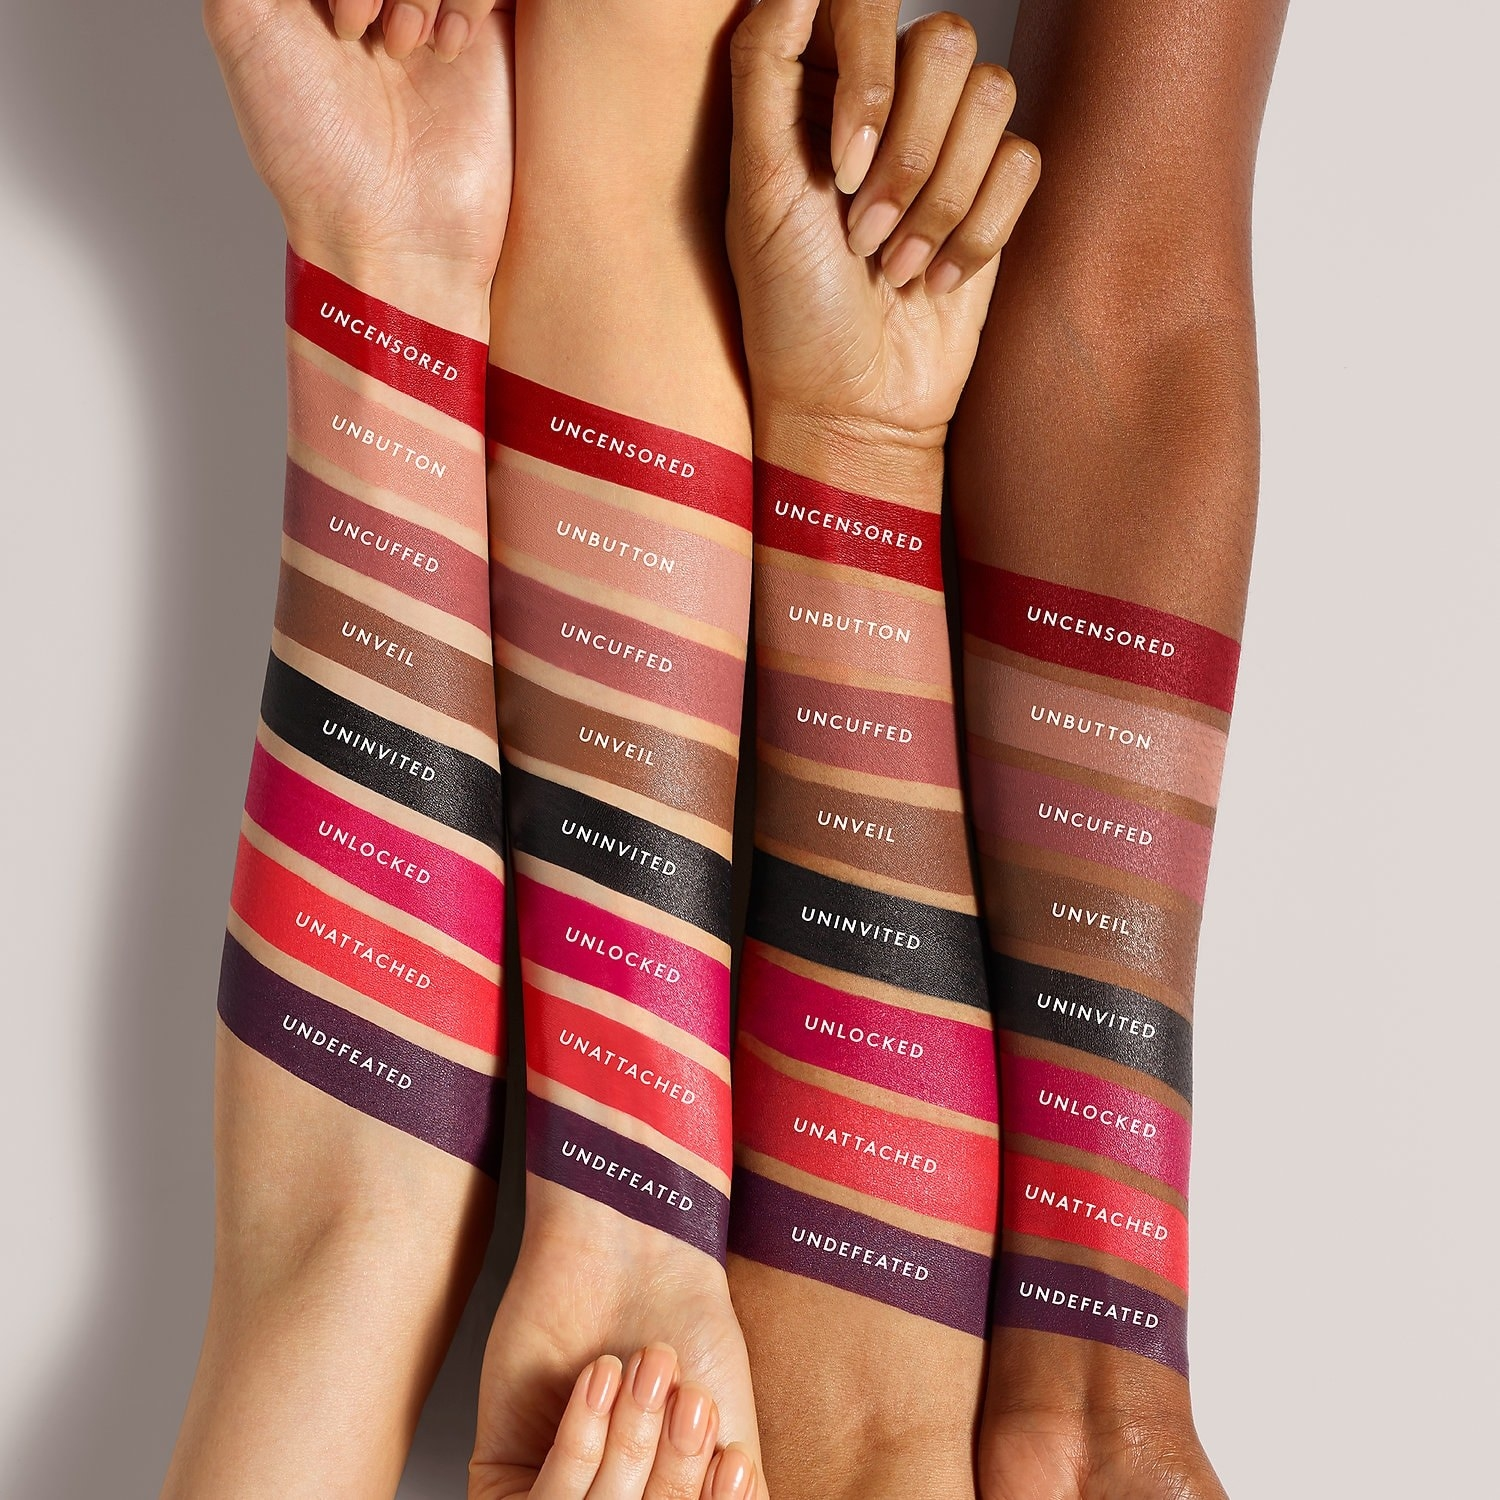 Four arms in different skin tones showing the lipstick colors, including pinks, red, purple, black, and brown